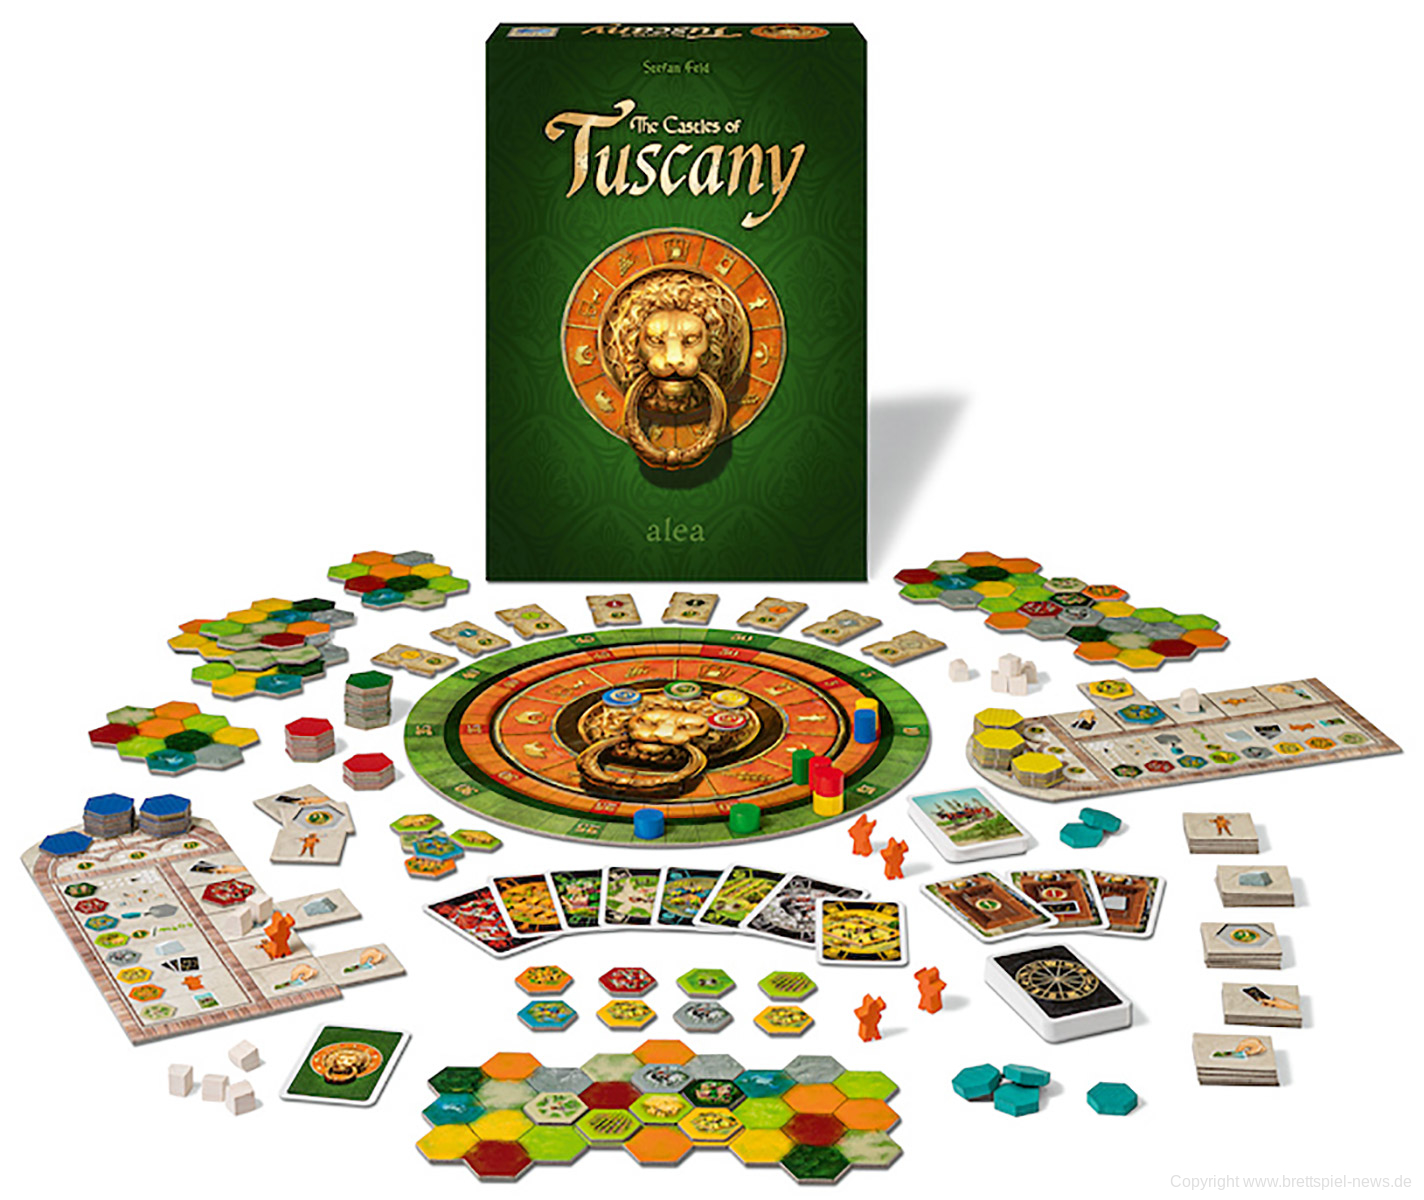 The Castles of Tuscany spielmaterial